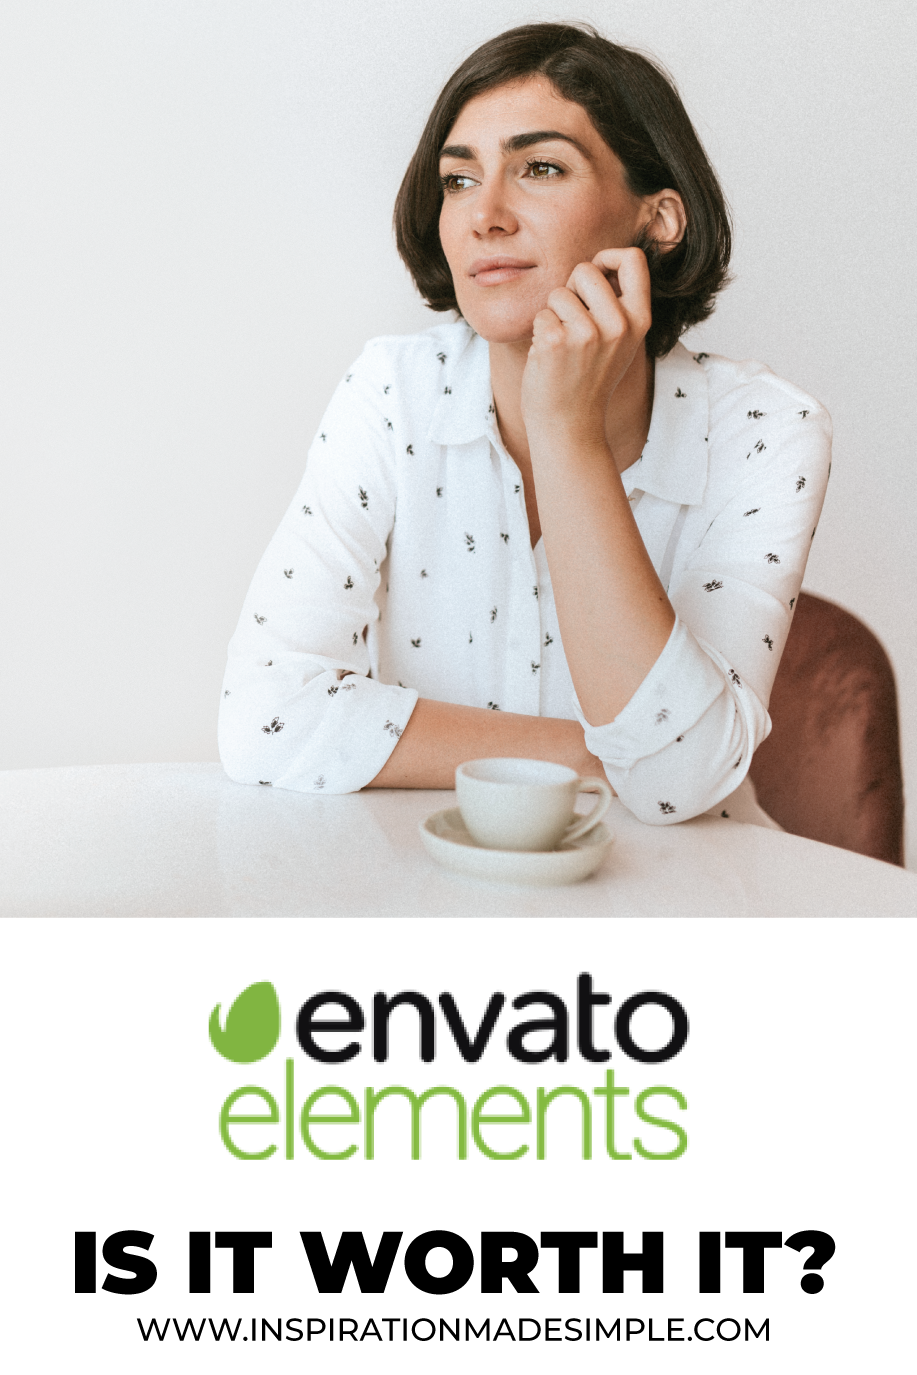 Is Envato Elements worth it?